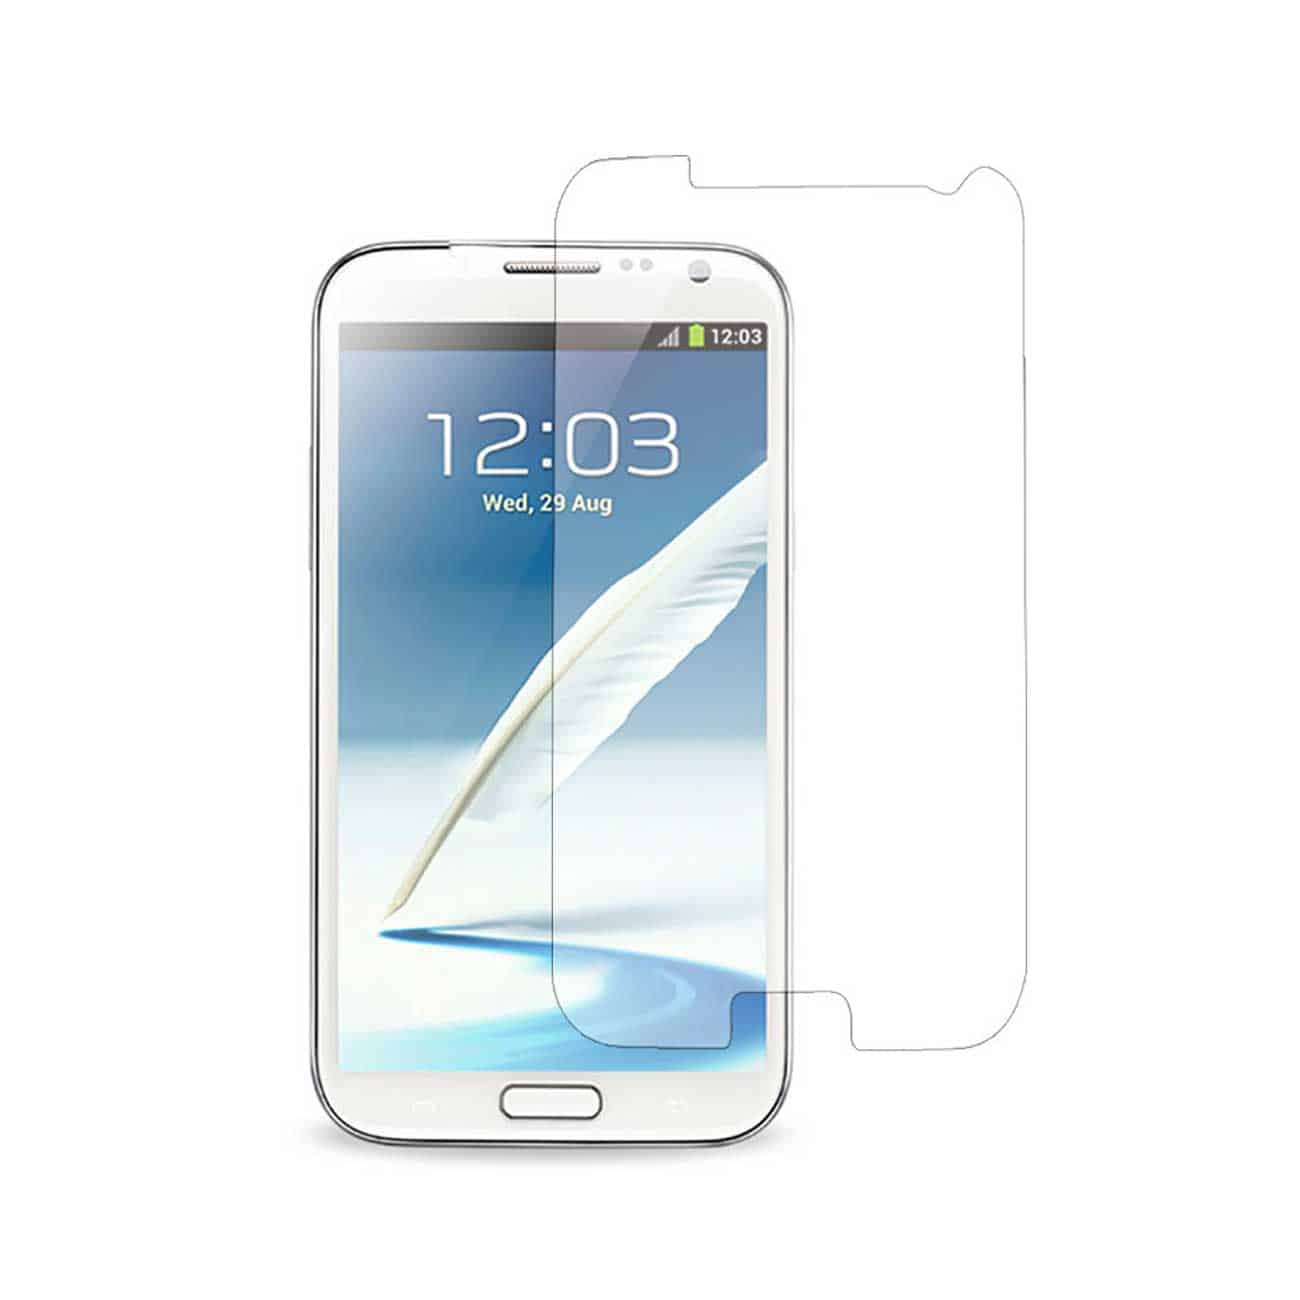 SAMSUNG GALAXY NOTE 2 TWO PIECES SCREEN PROTECTOR IN CLEAR